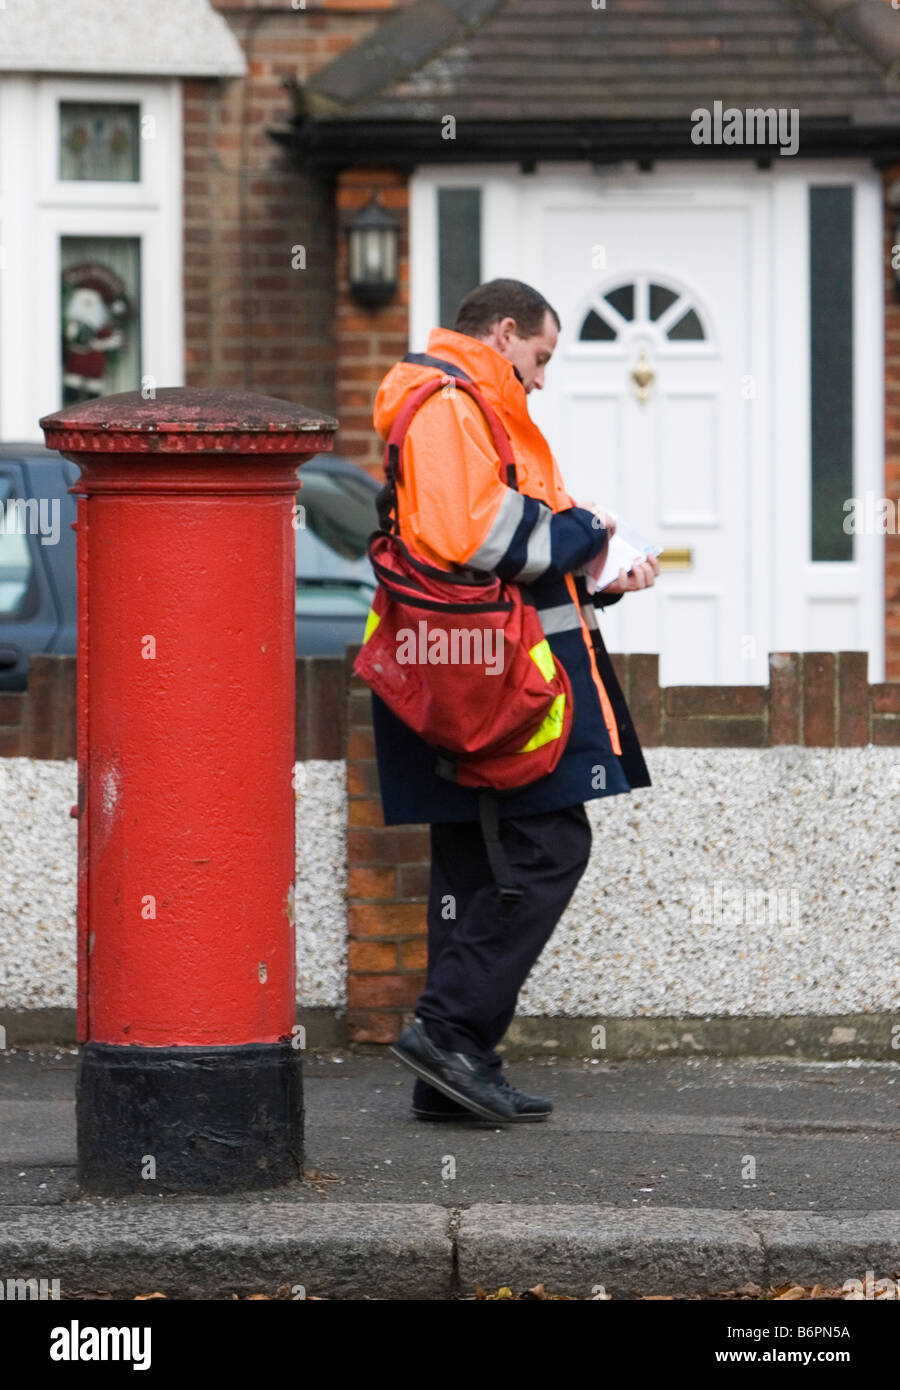 A Royal Mail Postman Walks Along A Road To Deliver Letters